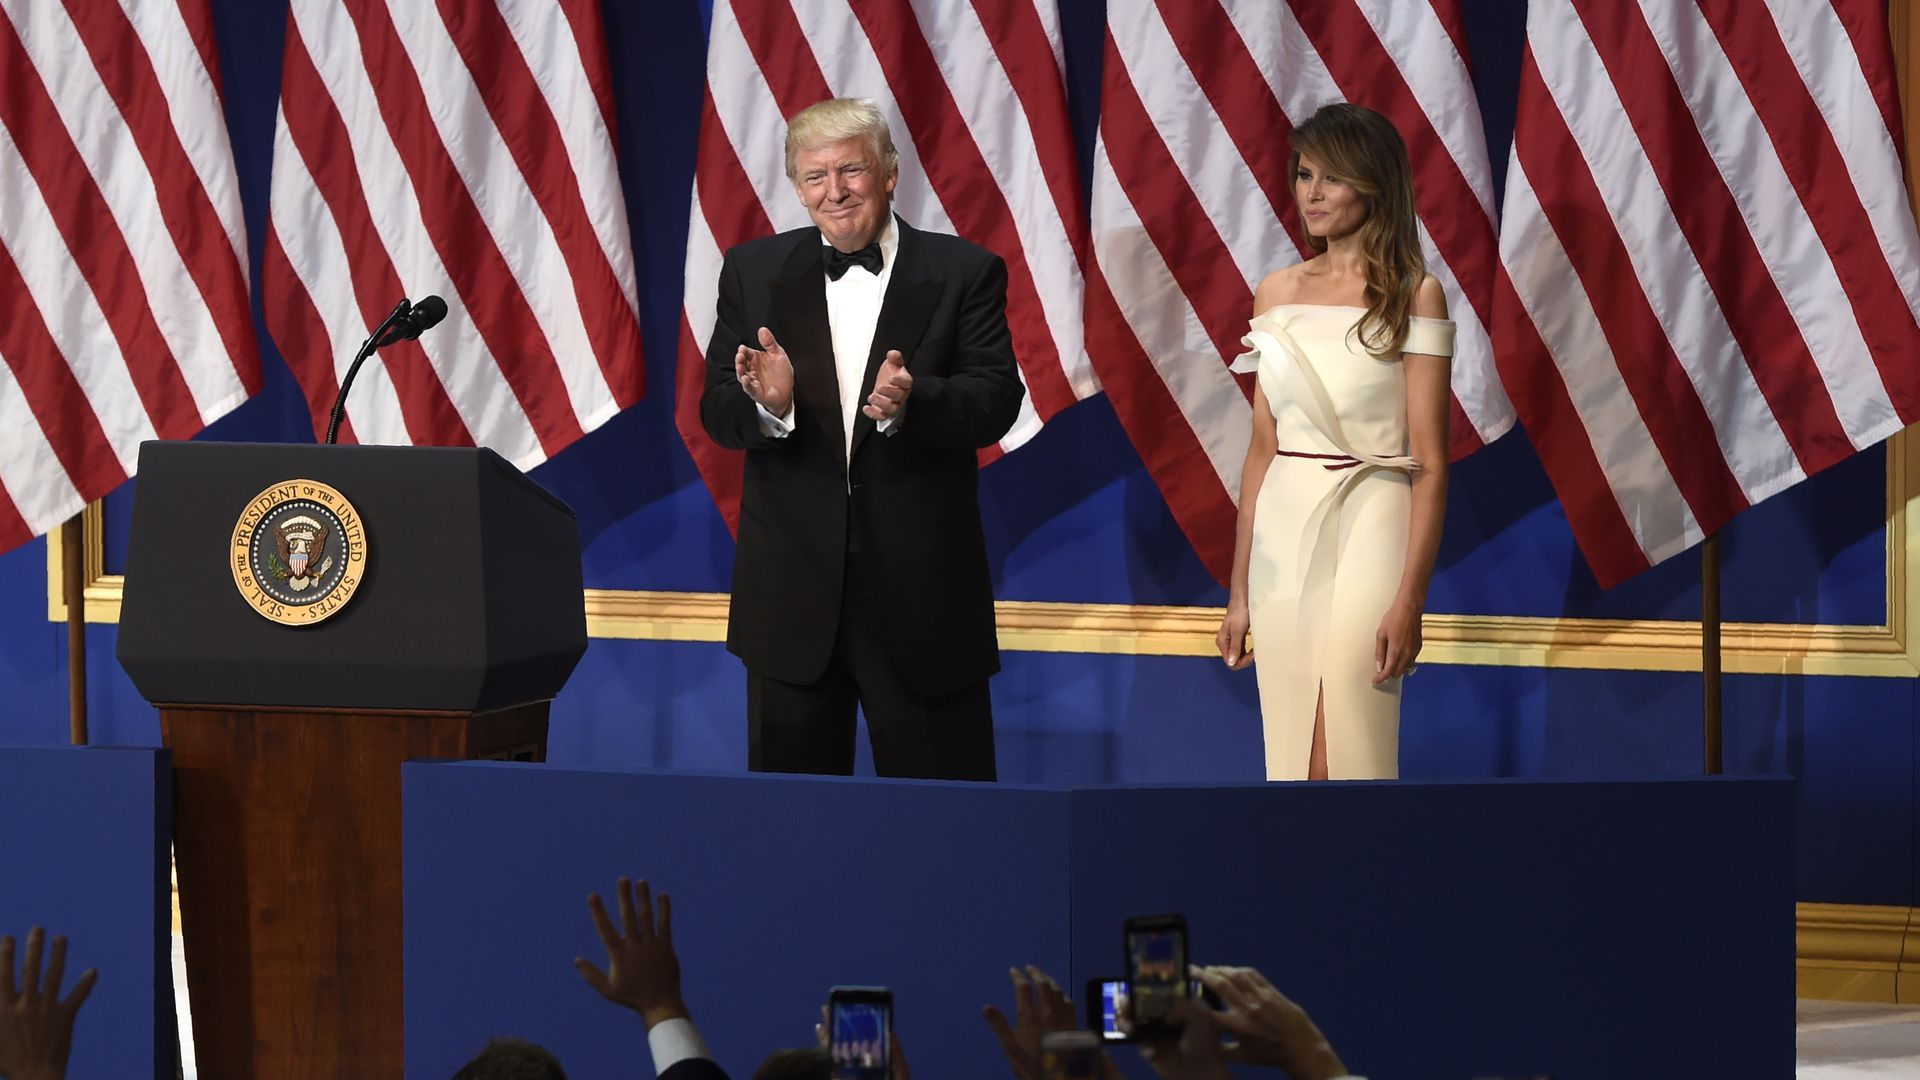 President Trump and Melania Trump at the inauguration